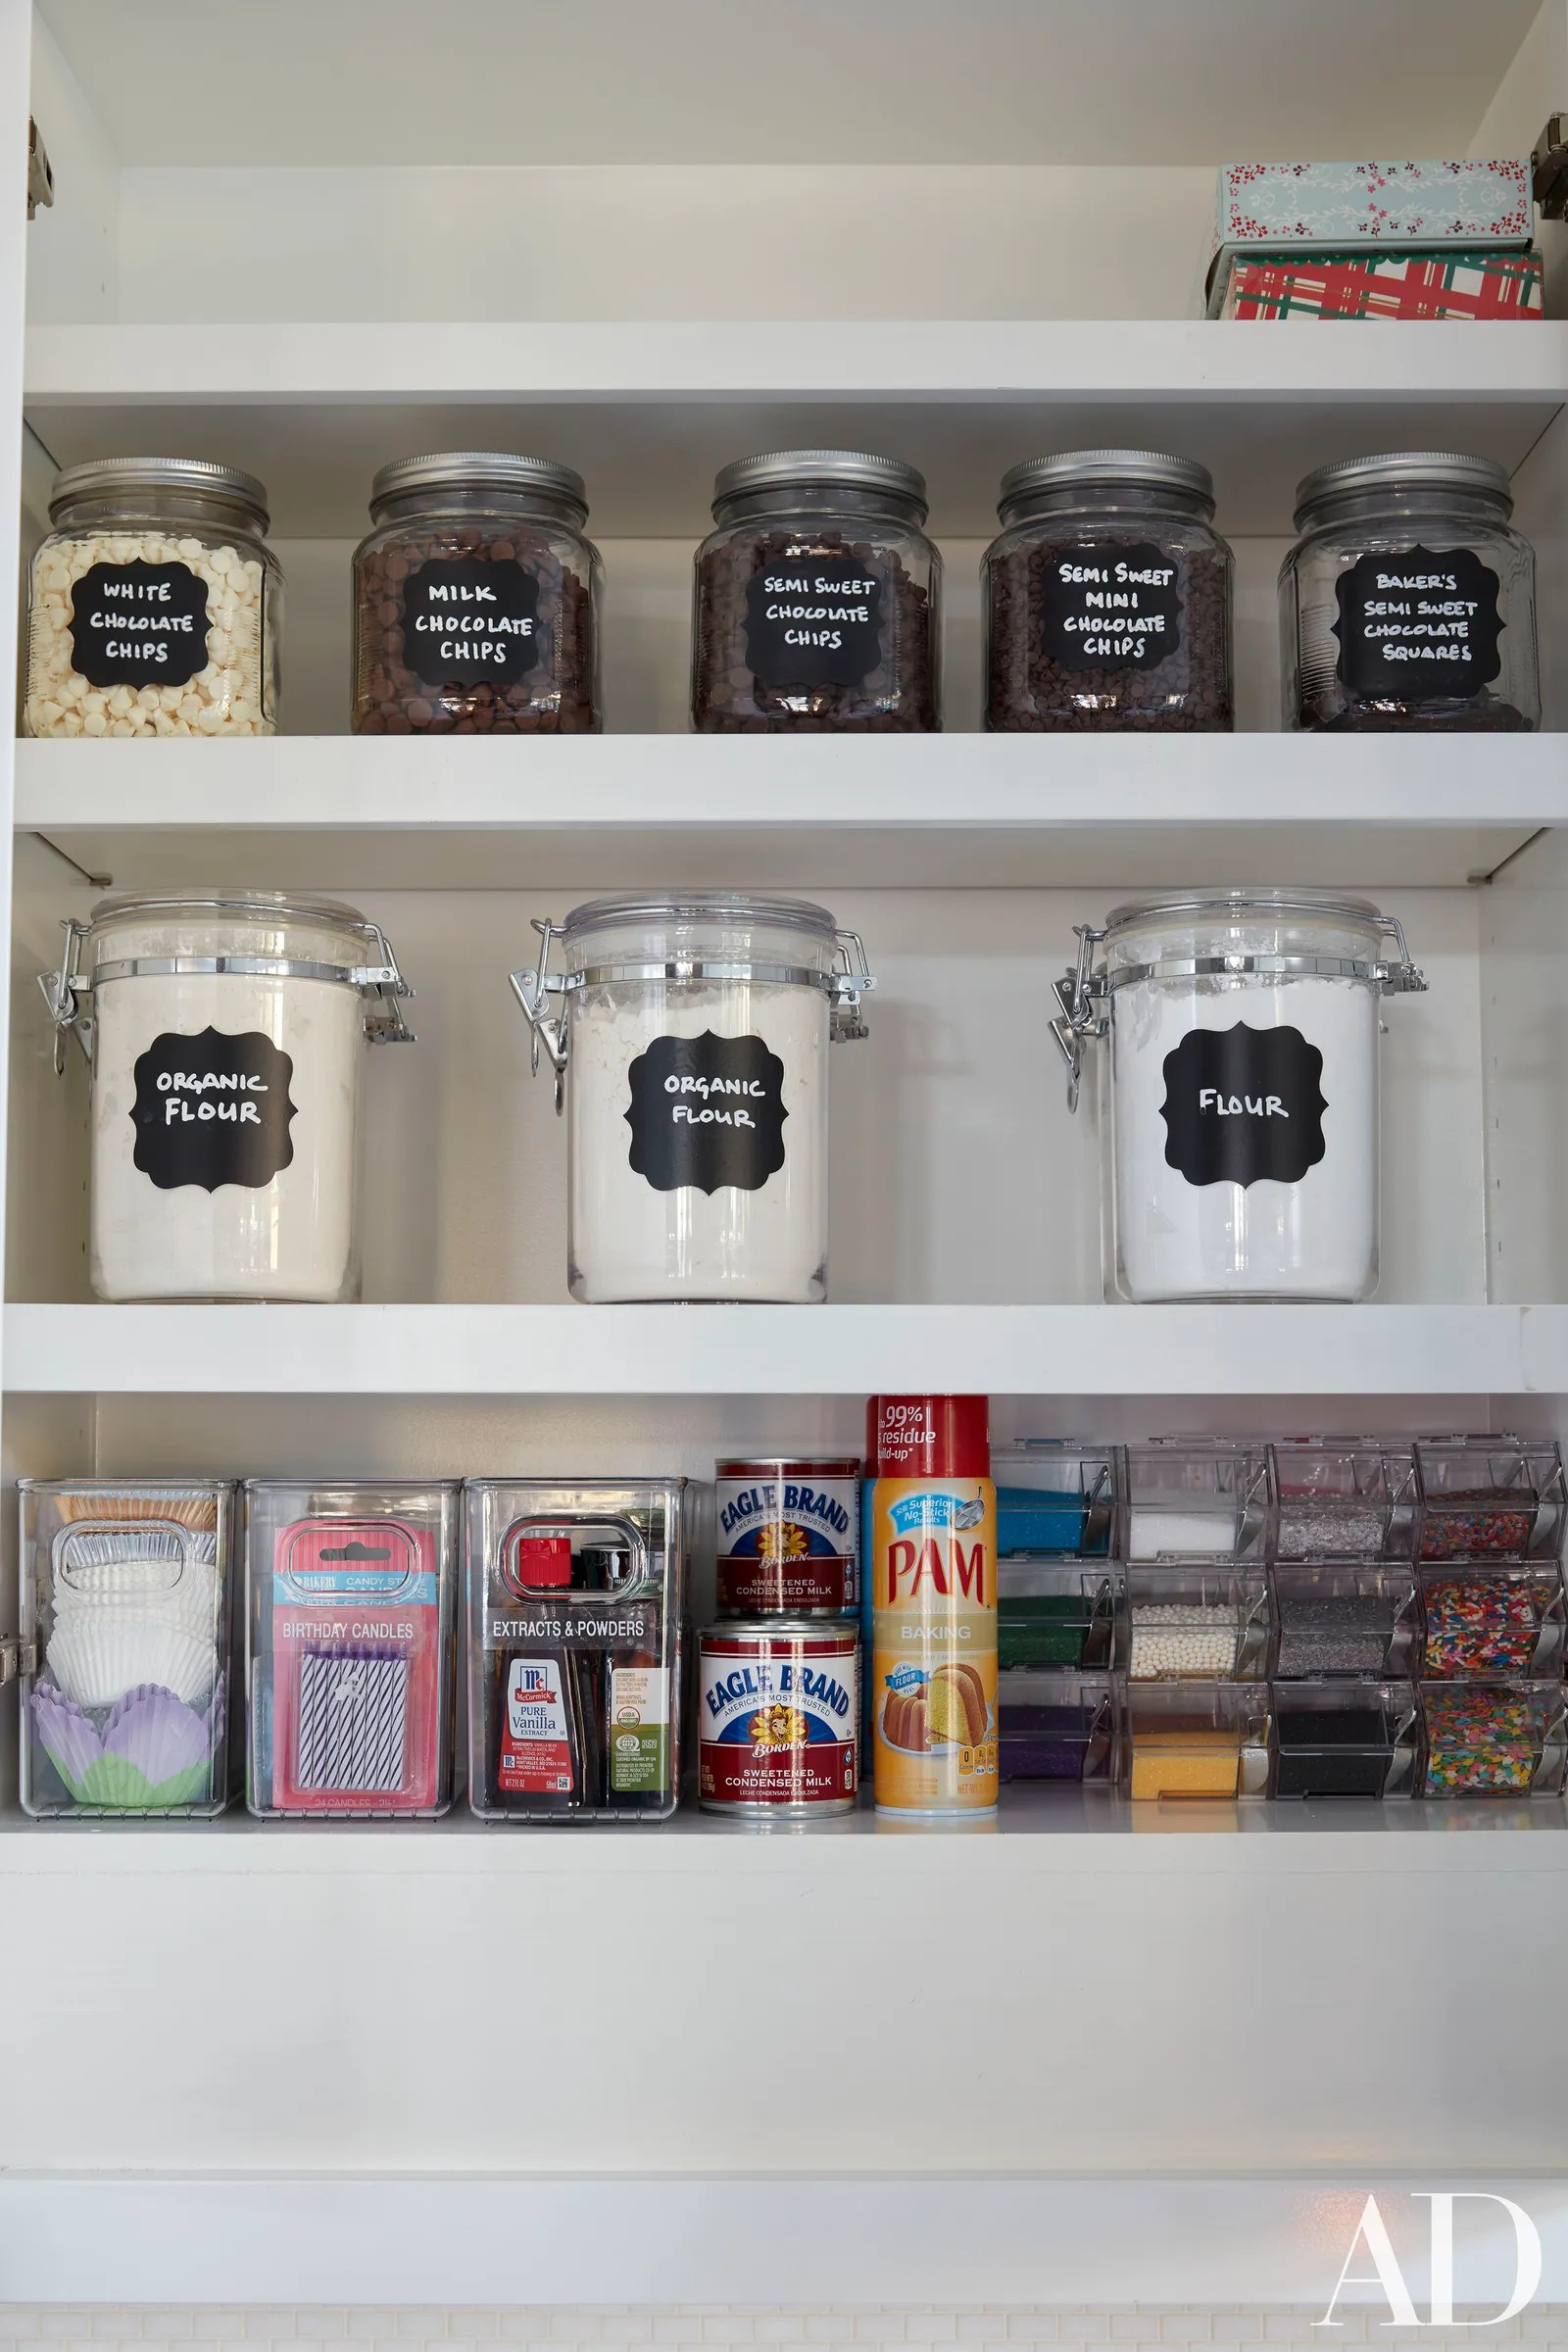 10 Clever Kitchen Organization Ideas To Maximize Storage